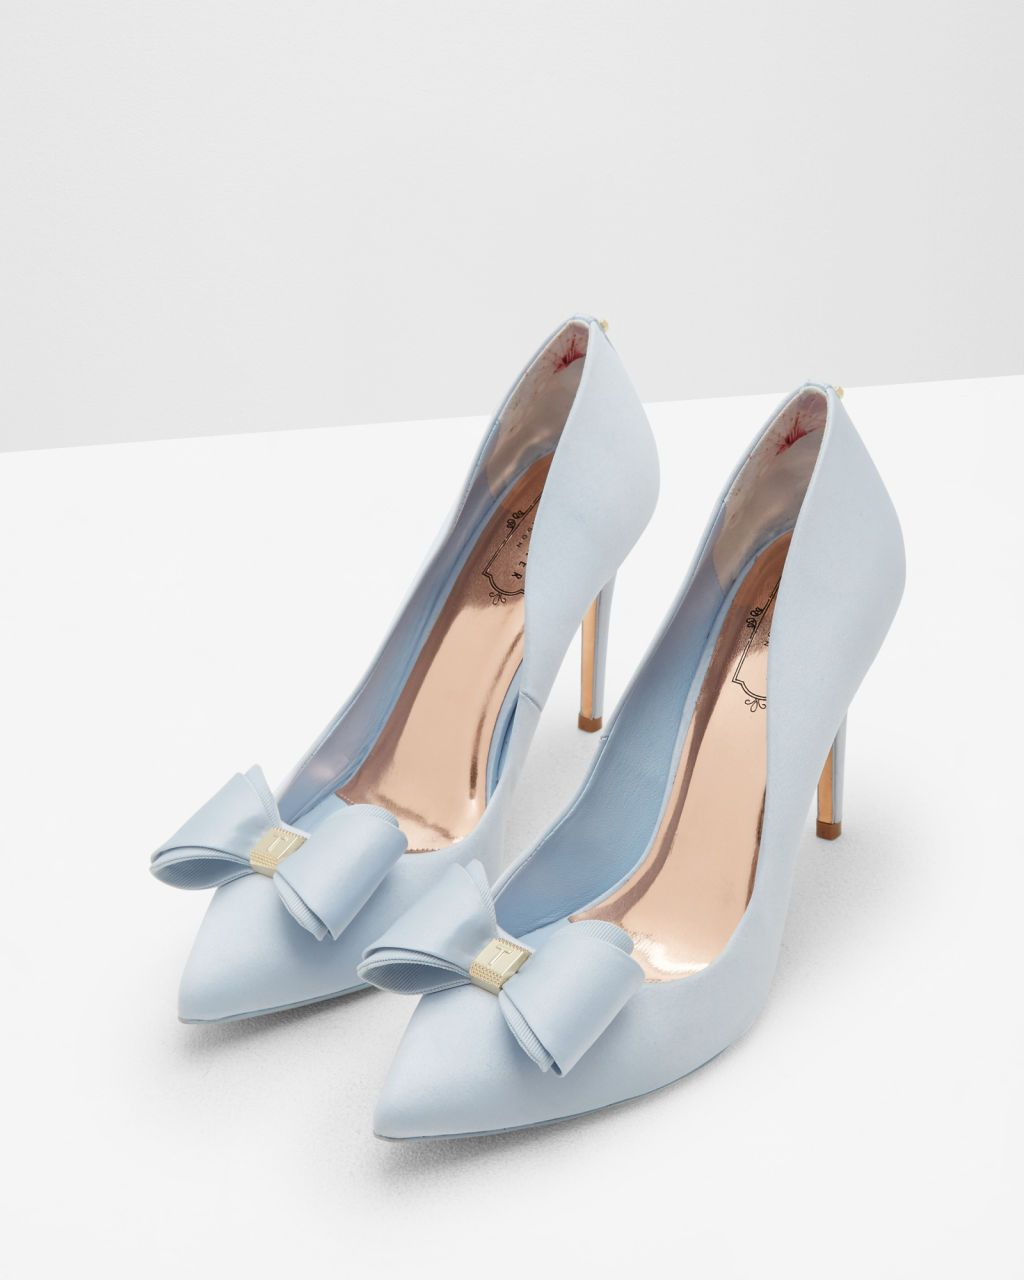 Ted baker shoes  53db0955b6